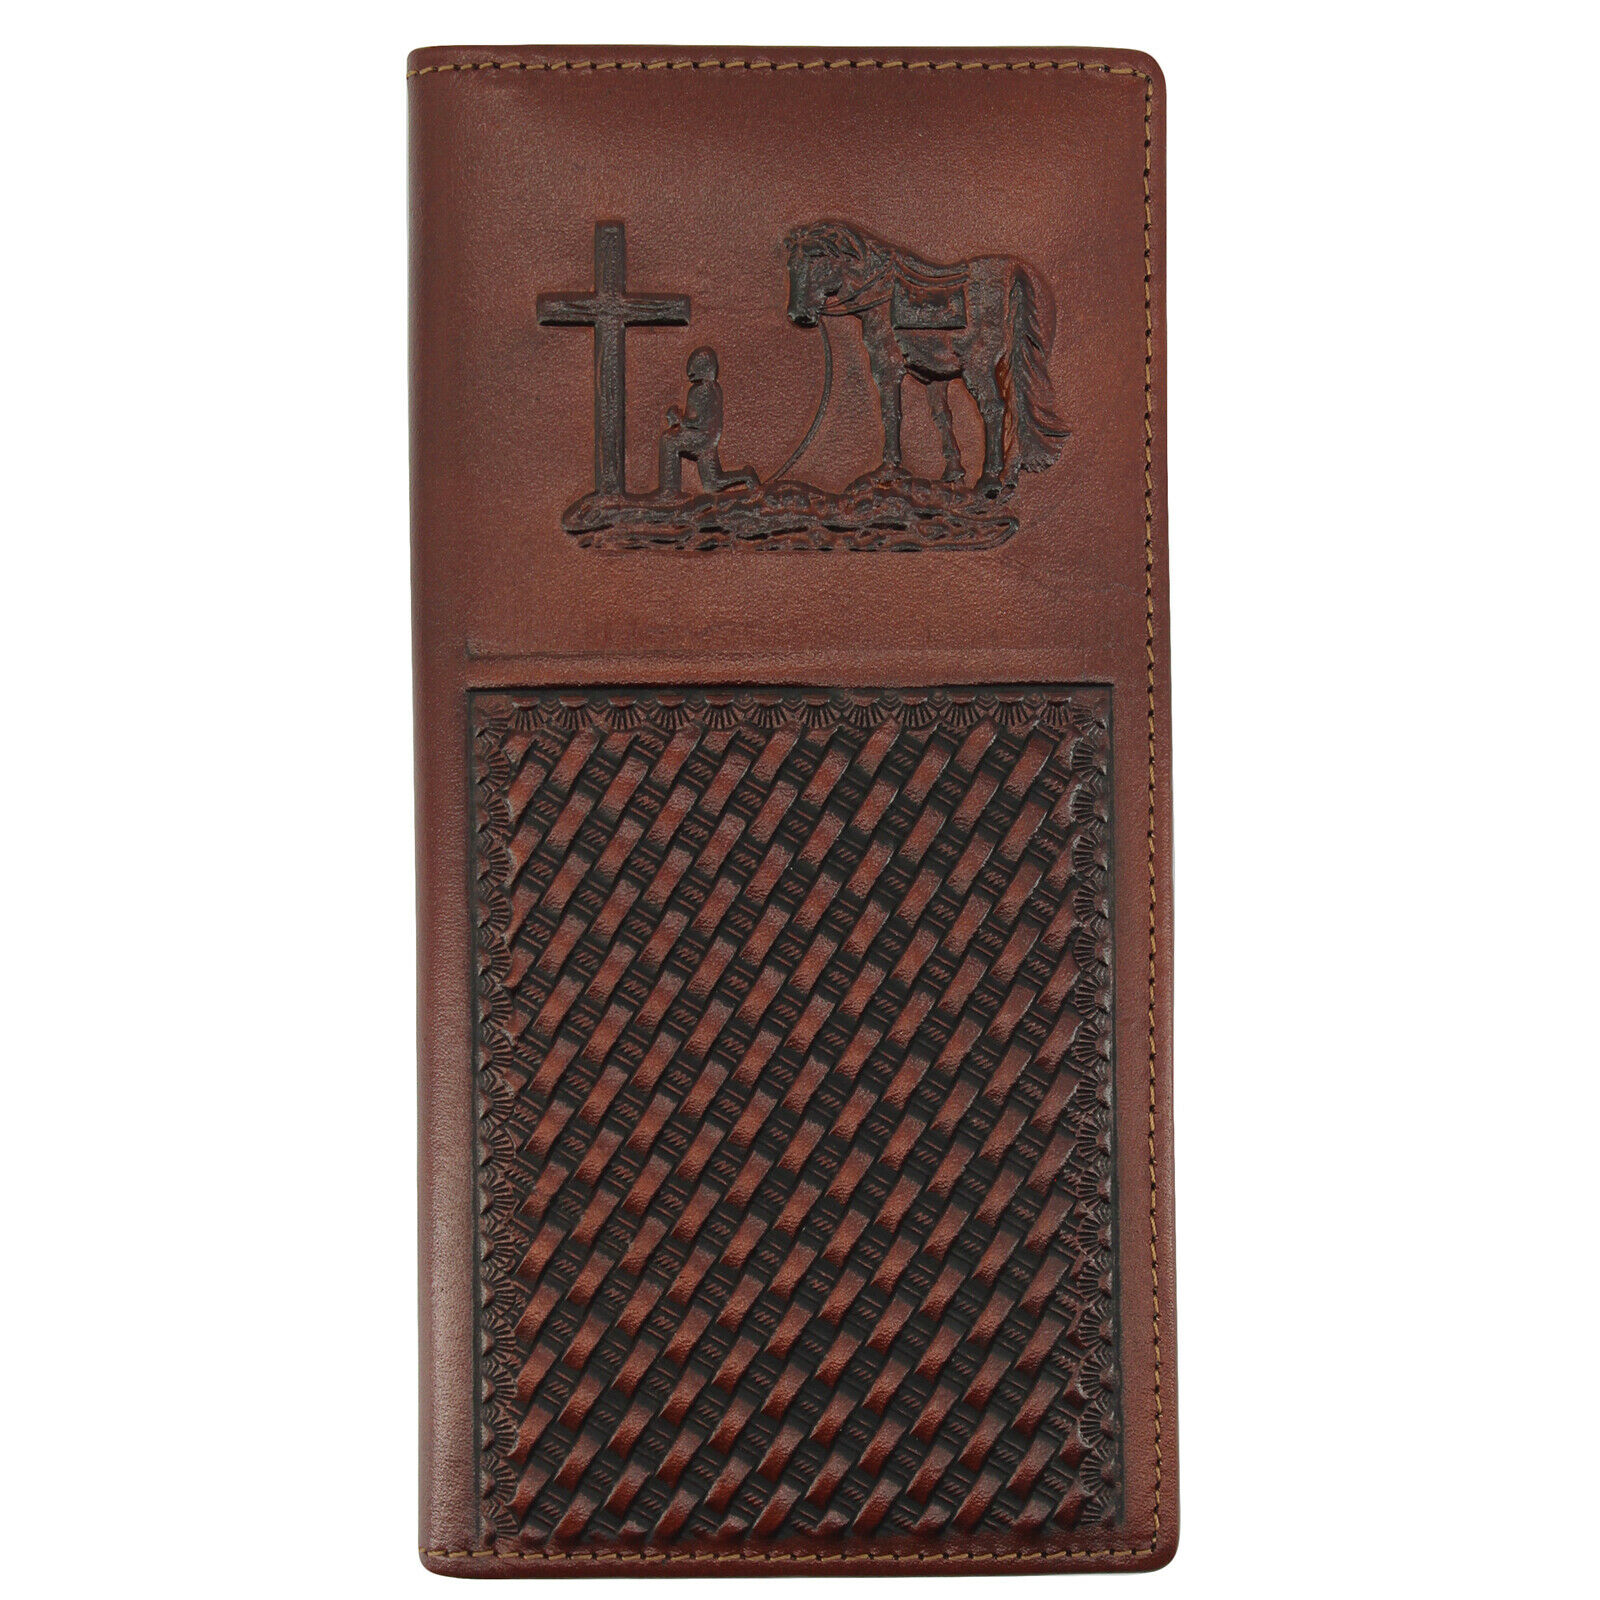 LXFF Men/'s Genuine Leather Long Bifold Wallet With ID Window Vintage Skull New